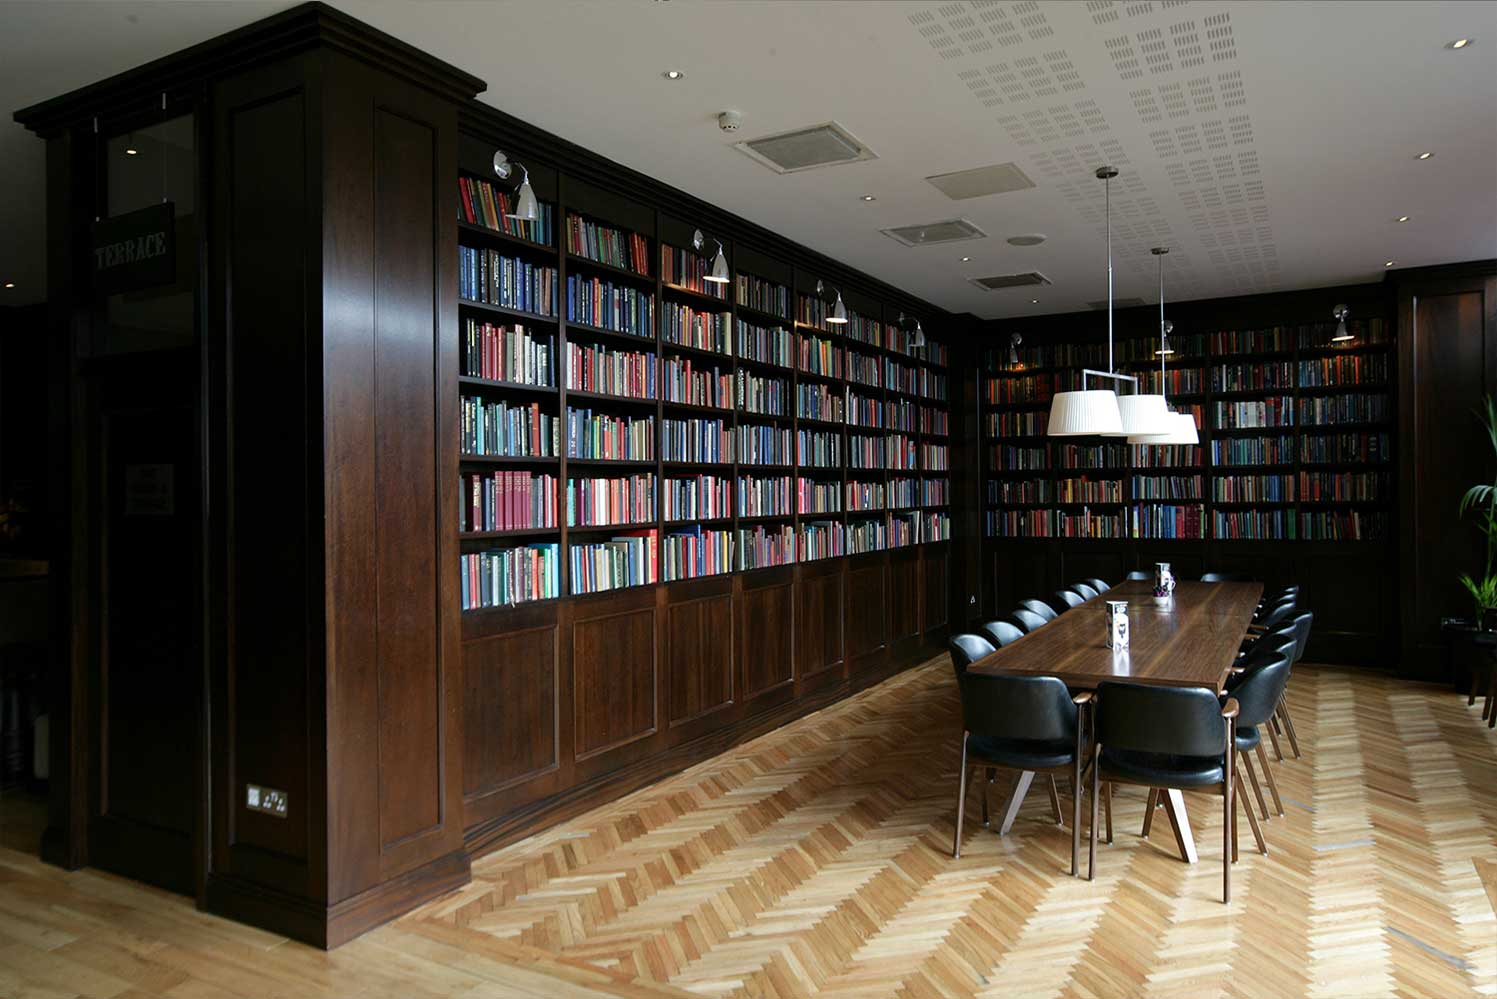 Bewley's hotel bar design - interior dining room with dark wood bookcase and long dining table